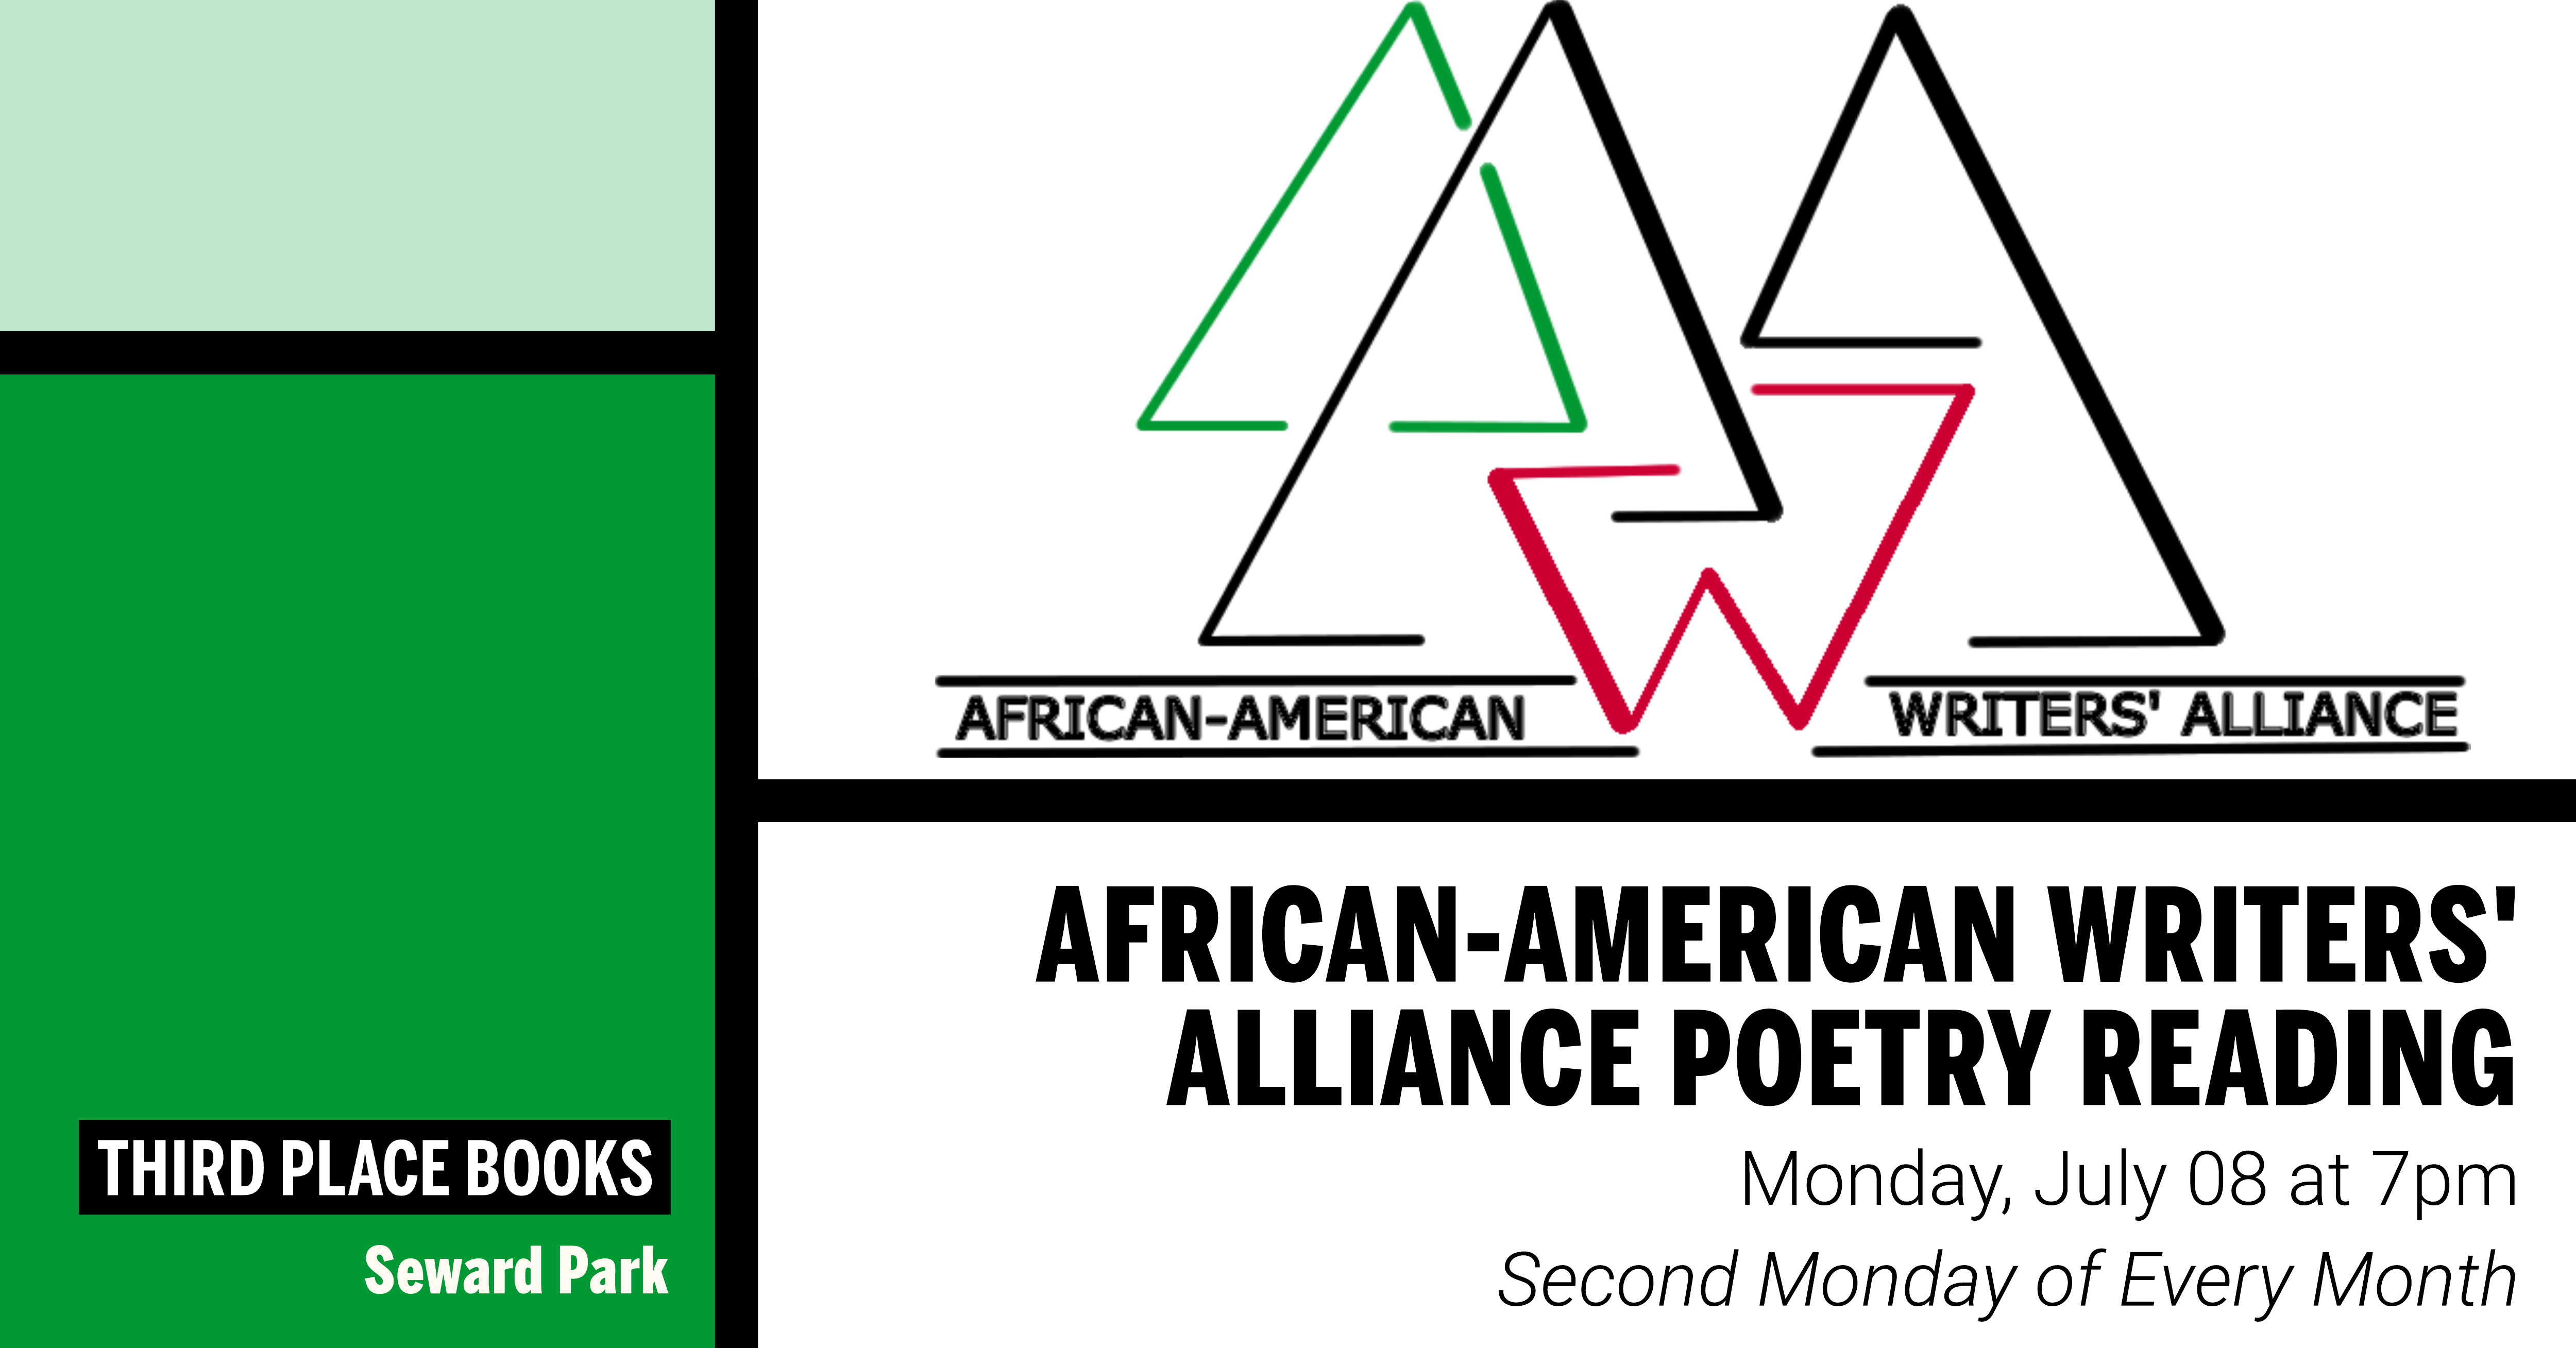 African-American Writers' Alliance Poetry Reading on Monday, July 8 at 7pm